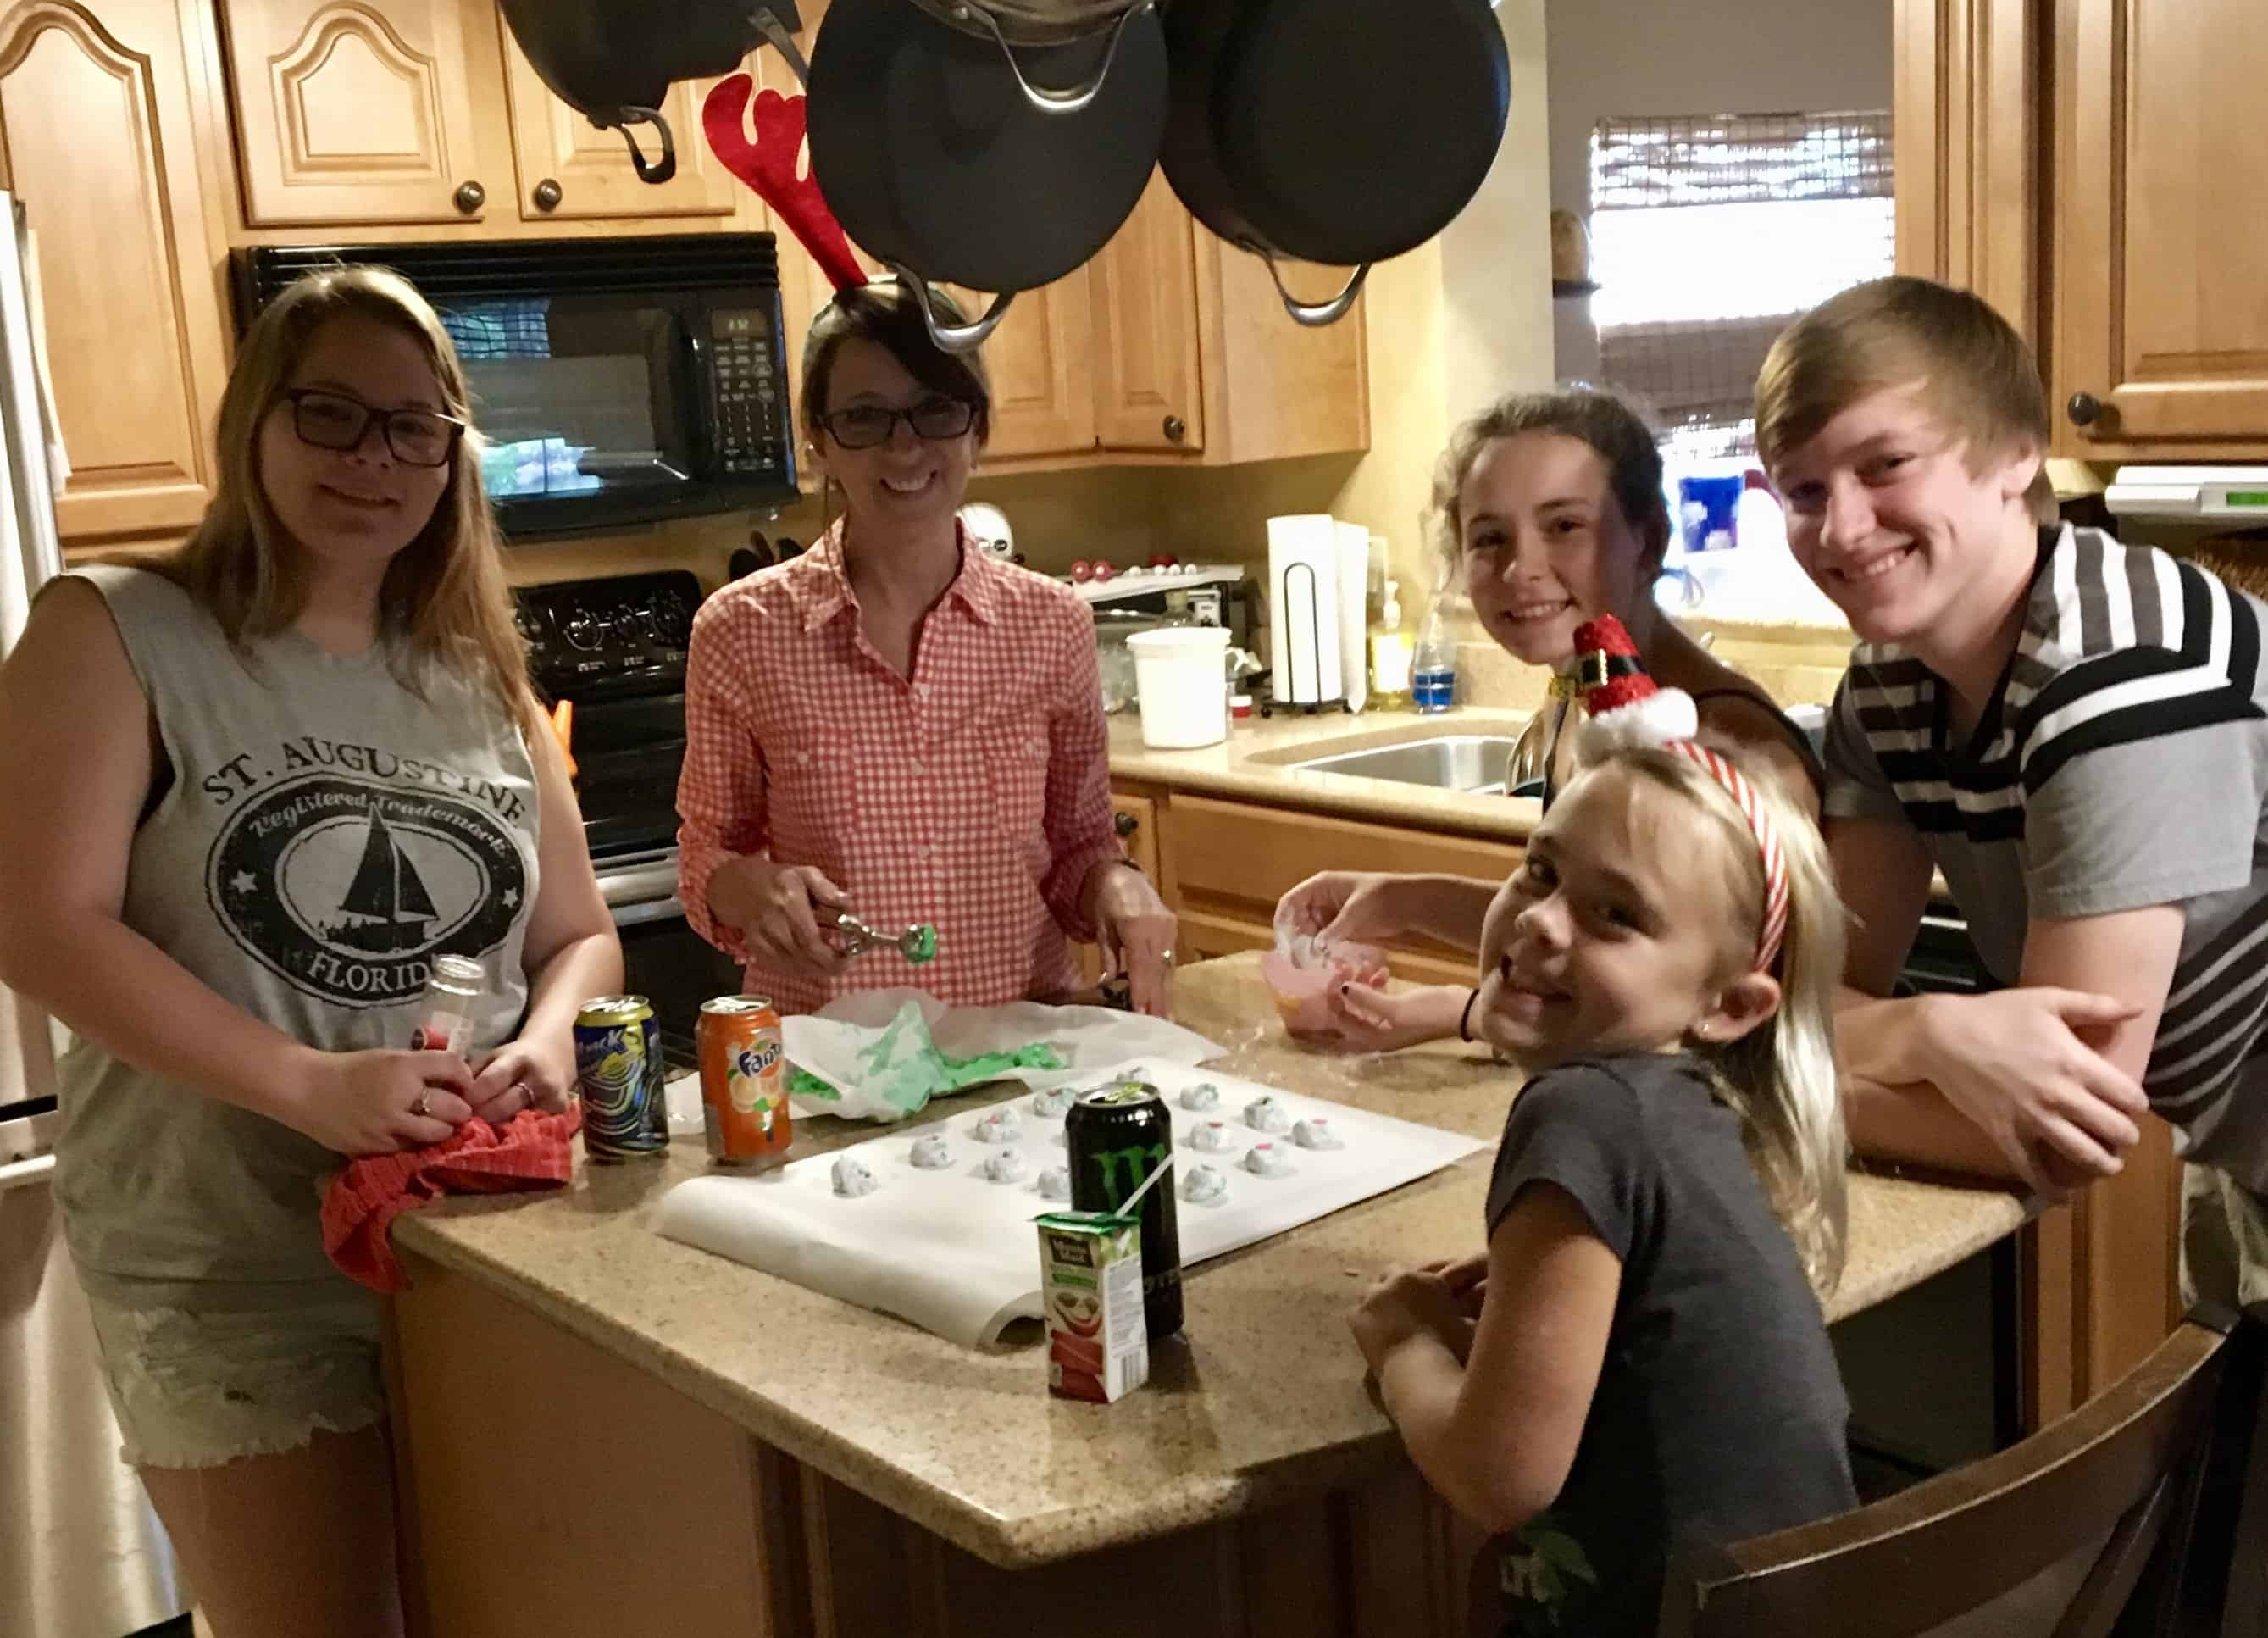 Grandparent activities: grandchildren making cookies with grandma